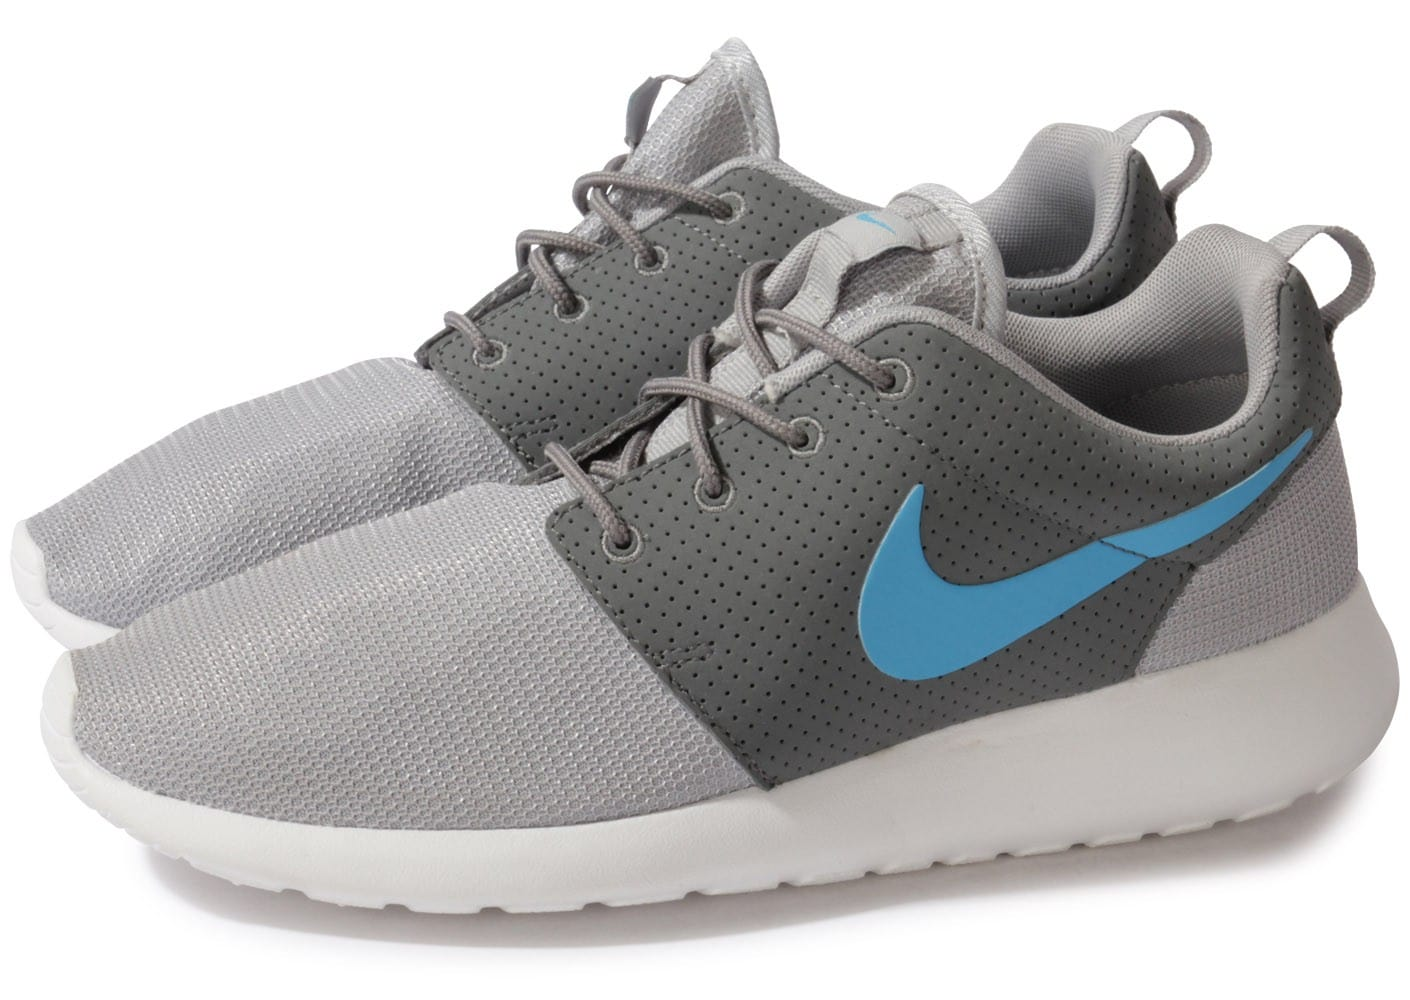 newest c30e8 e4df4 Roshe Chausport homme Nike Baskets Grise Chaussures Run gdfwFqS